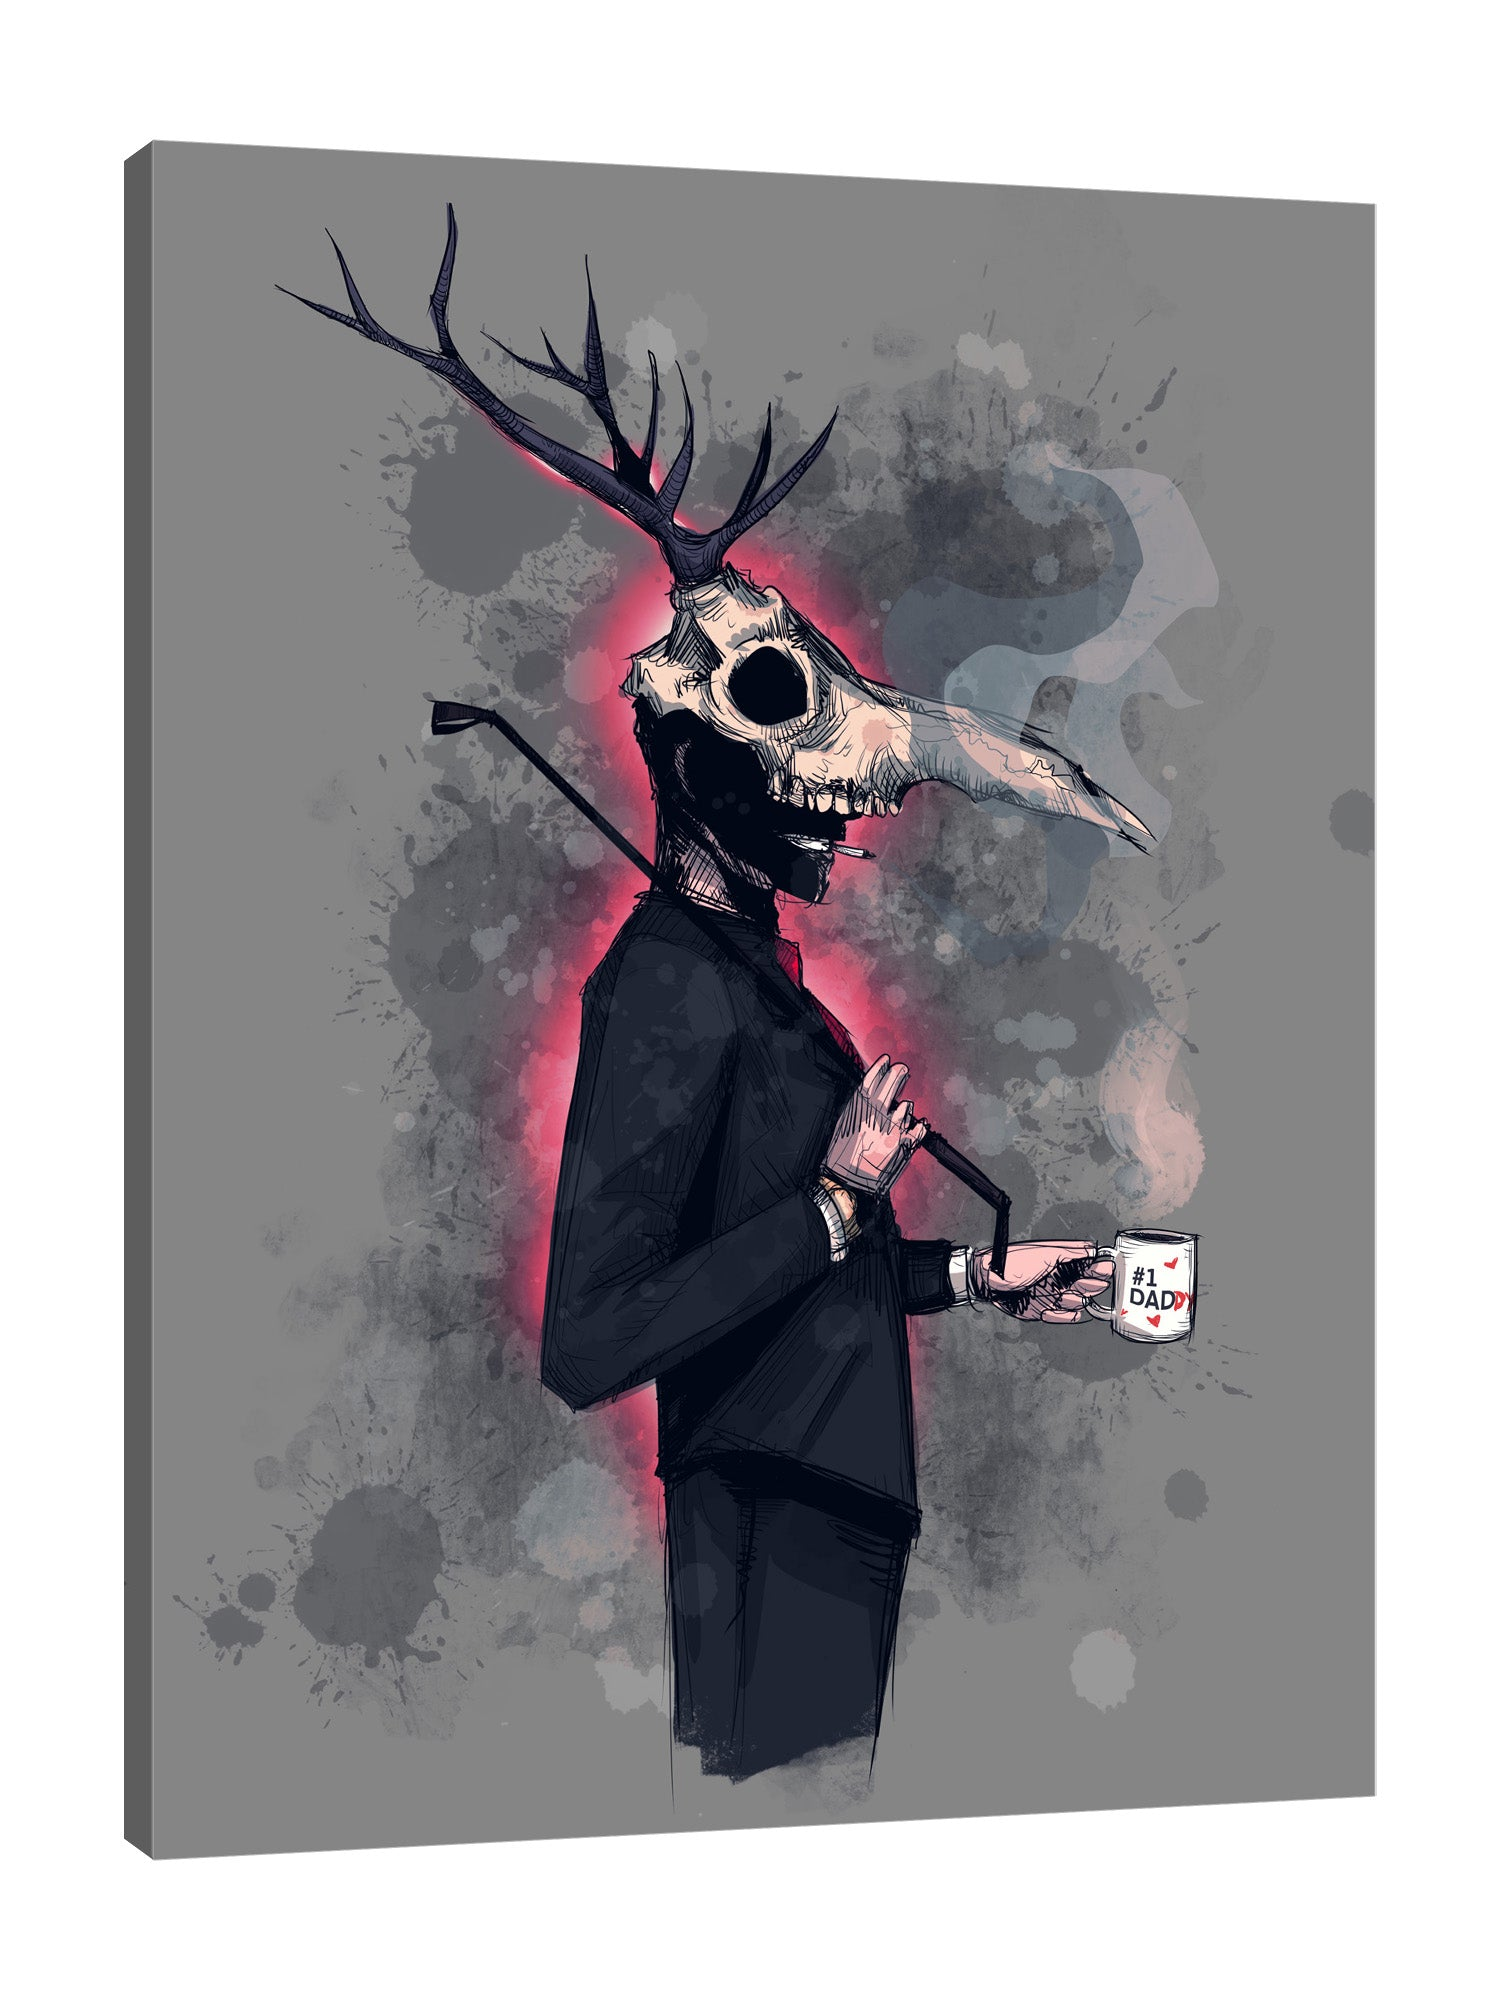 Ludwig-Van-Bacon,Vertical,3X4,Modern & Contemporary,Entertainment,People,Fantasy & Sci-Fi,bdsm,cosplay,words,deer,horns,suits,dad,costume,cup,holding,mug,smoking,smoke,whip,whips,Charcoal Gray,Red,Purple,Blue